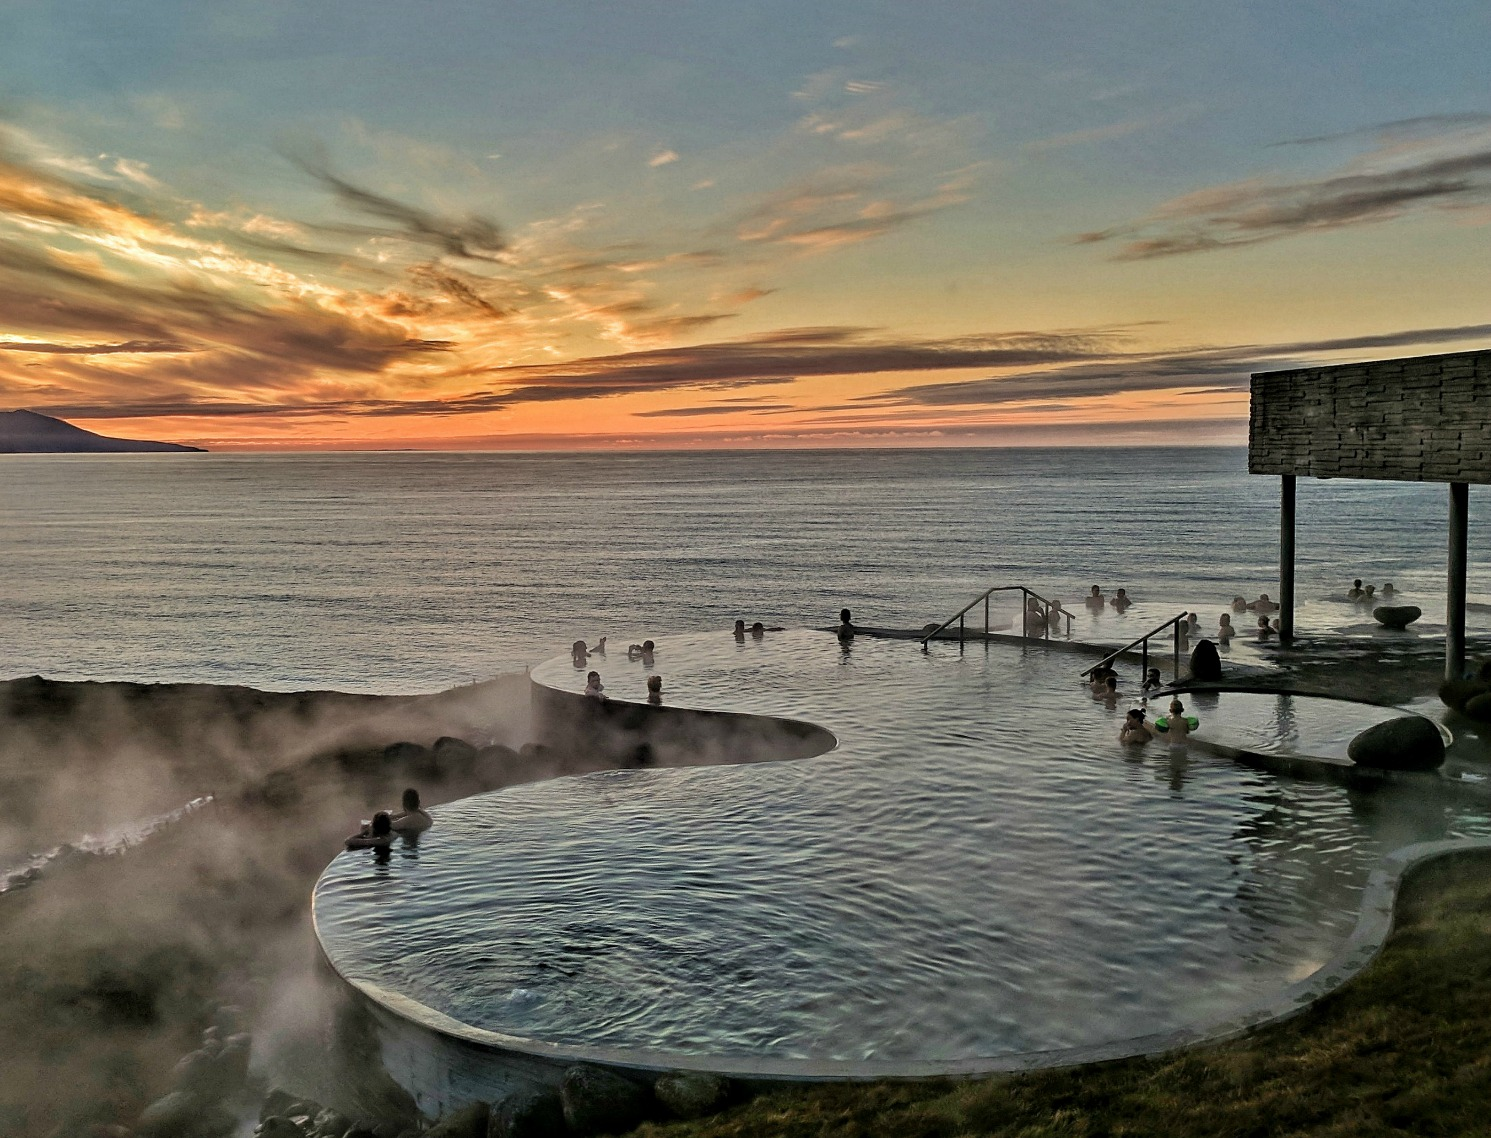 10 reasons to visit Iceland. Located on the coast of The Atlantic, GeoSea thermal bath deliver on beauty and relaxation.